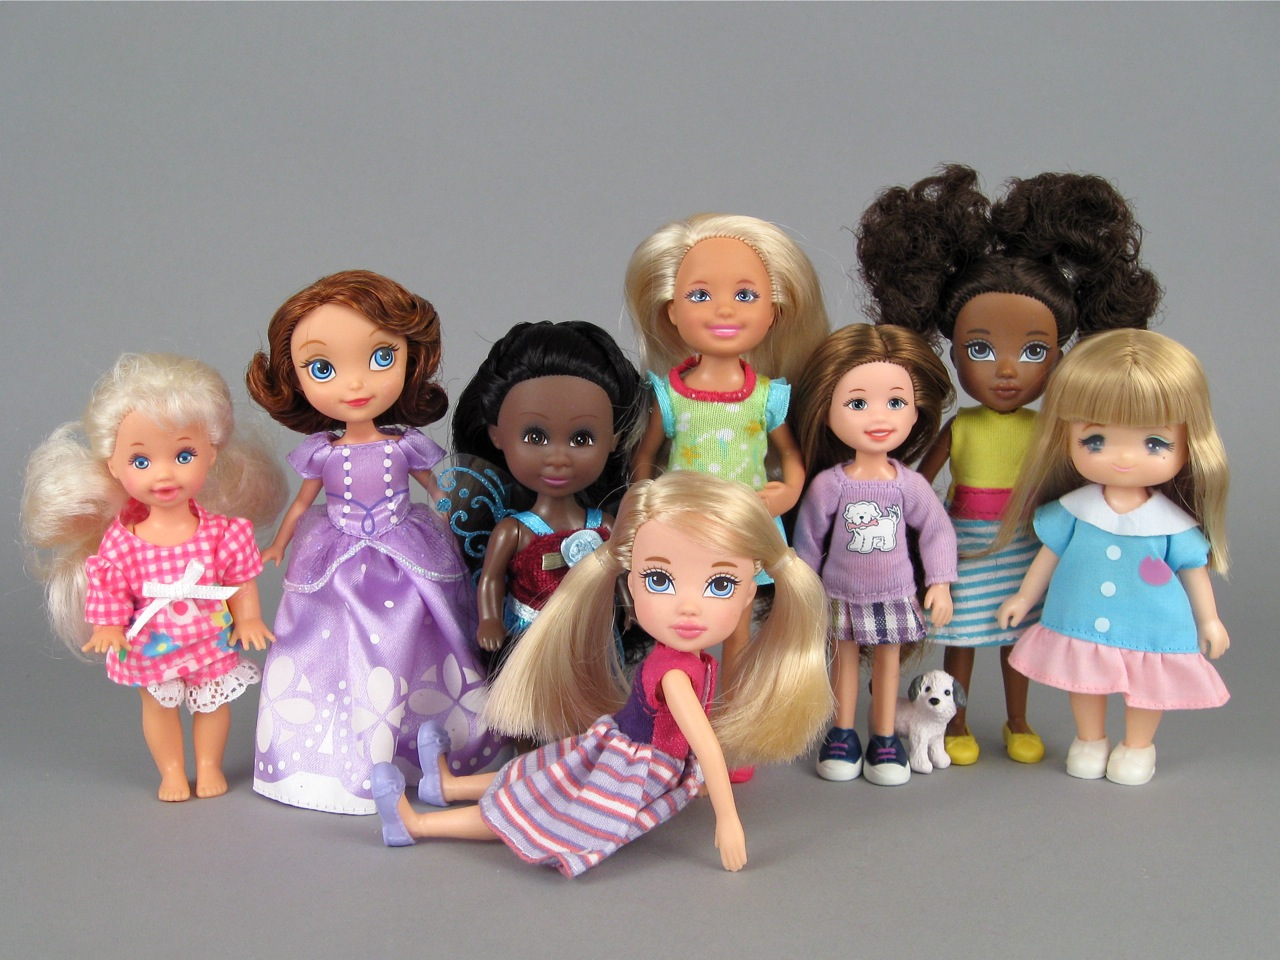 "Moxie Girlz ""Friends"" Mini Dolls by MGA Entertainment 